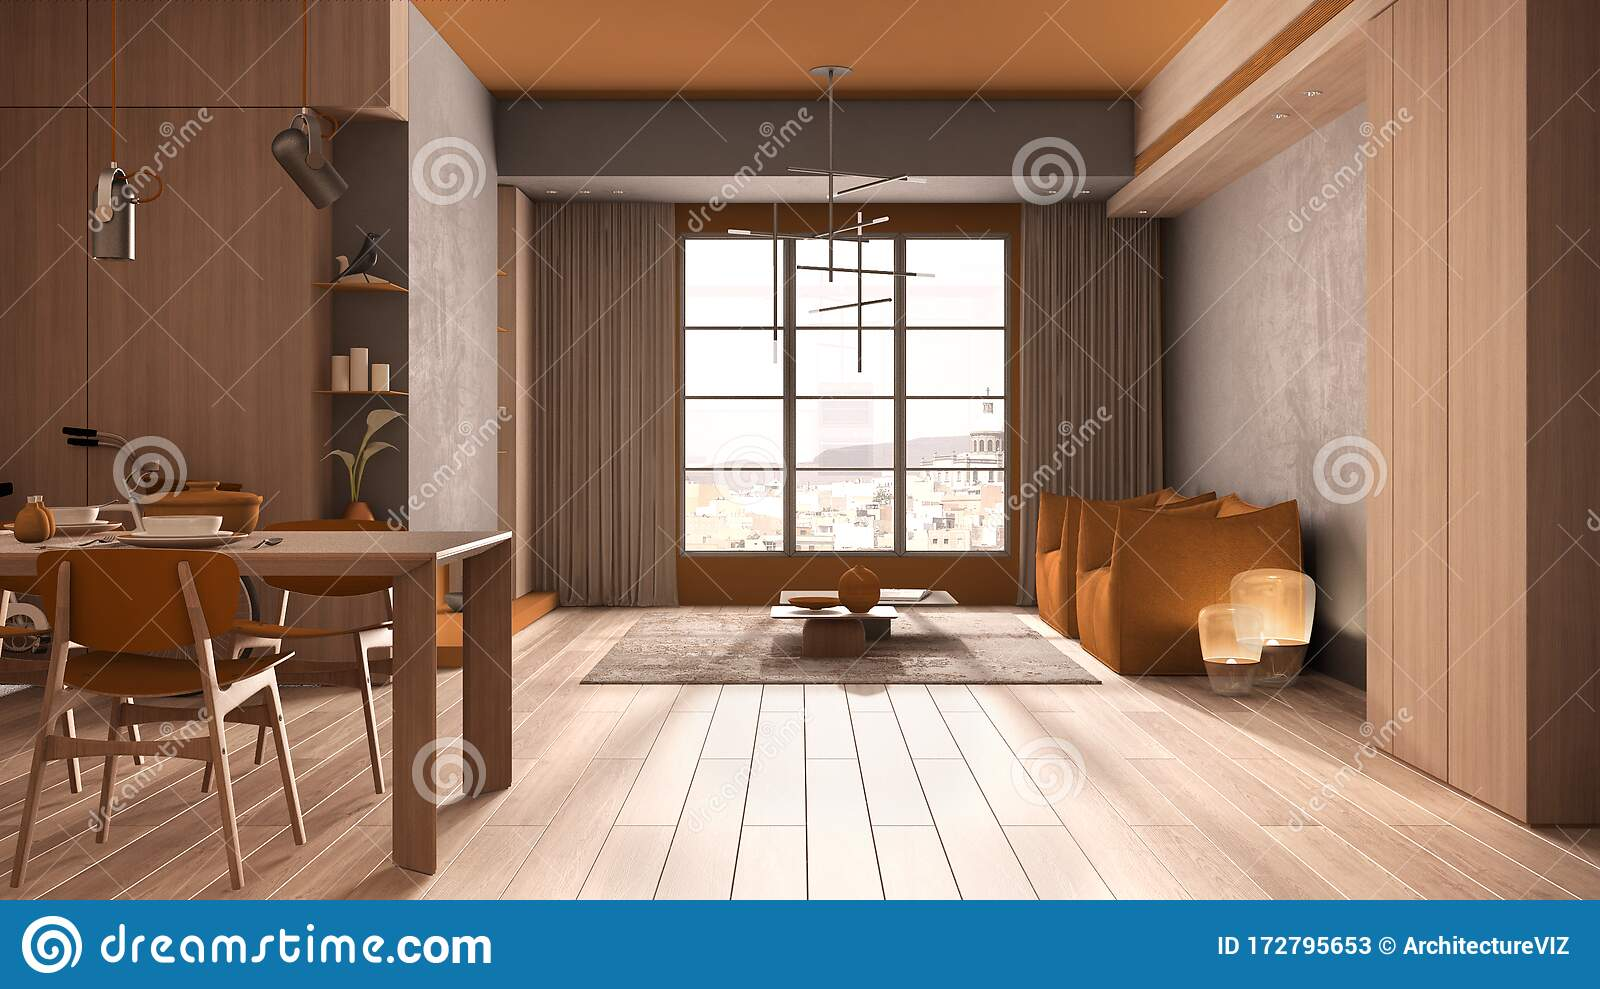 Minimalist Kitchen With Dining Room In Orange Tones With Wooden And Concrete Details Dining Table Laid For Two Chairs Parquet Stock Illustration Illustration Of Kitchen Dining 172795653